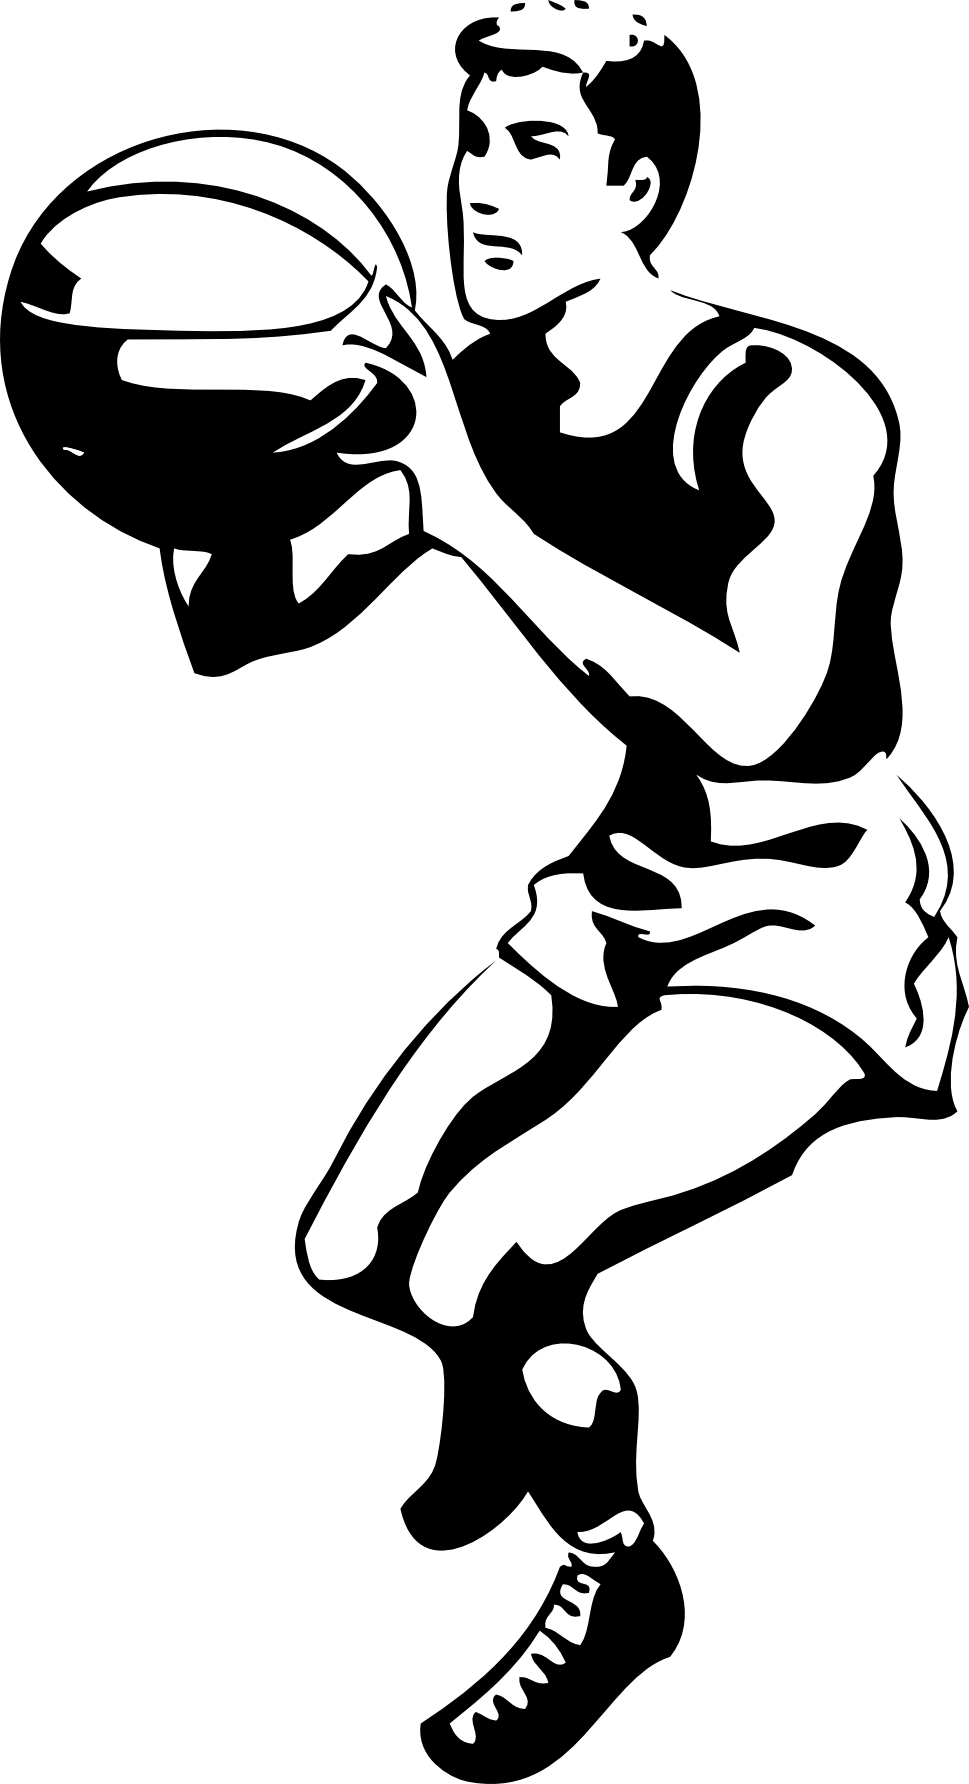 Man playing basketball clipart vector free library 19 Crowd clipart HUGE FREEBIE! Download for PowerPoint presentations ... vector free library